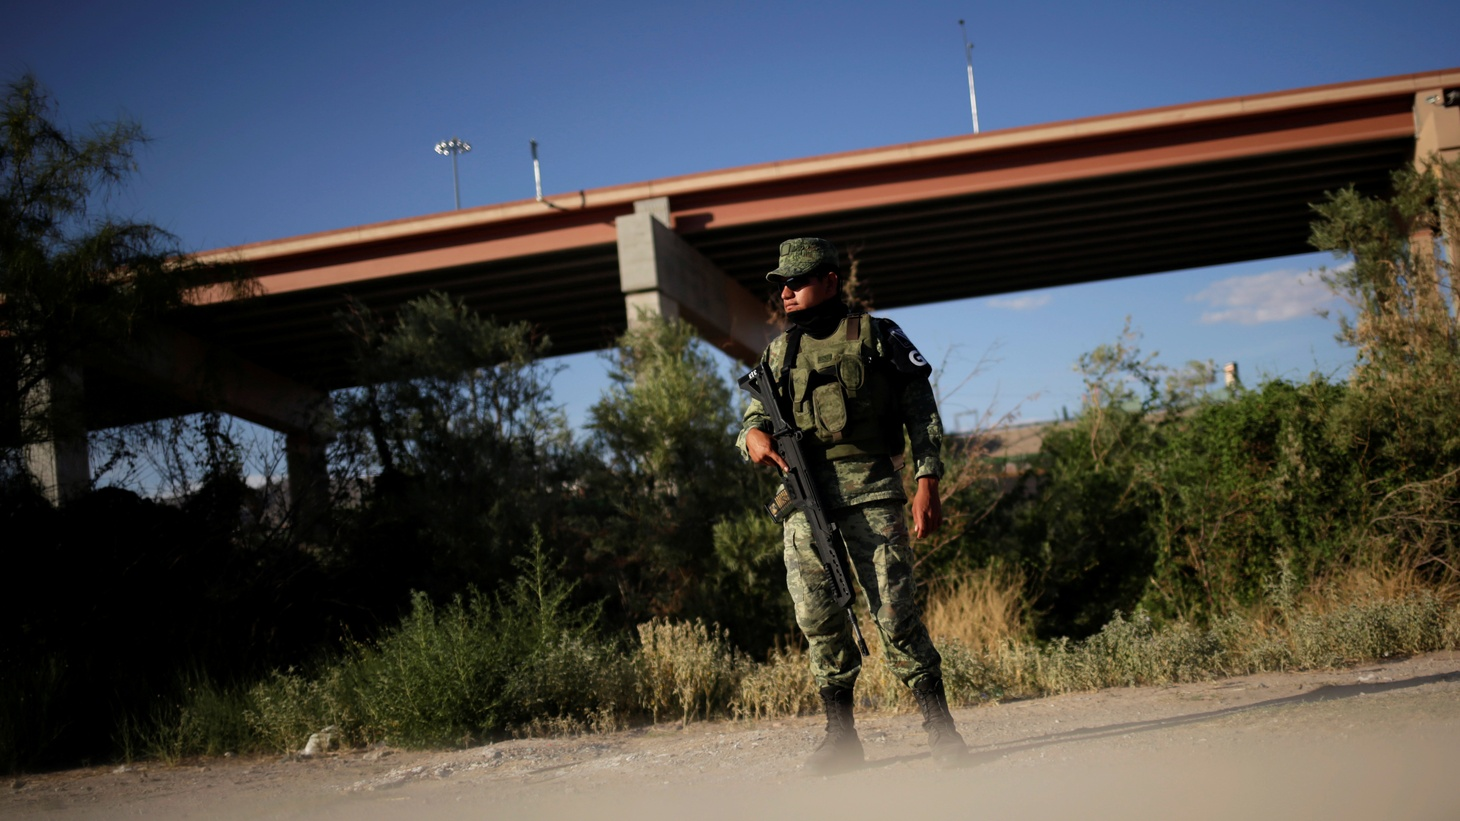 A National Guard soldier keeps watch at the border with El Paso, Texas, U.S., as seen from Ciudad Juarez, Mexico July 30, 2019.